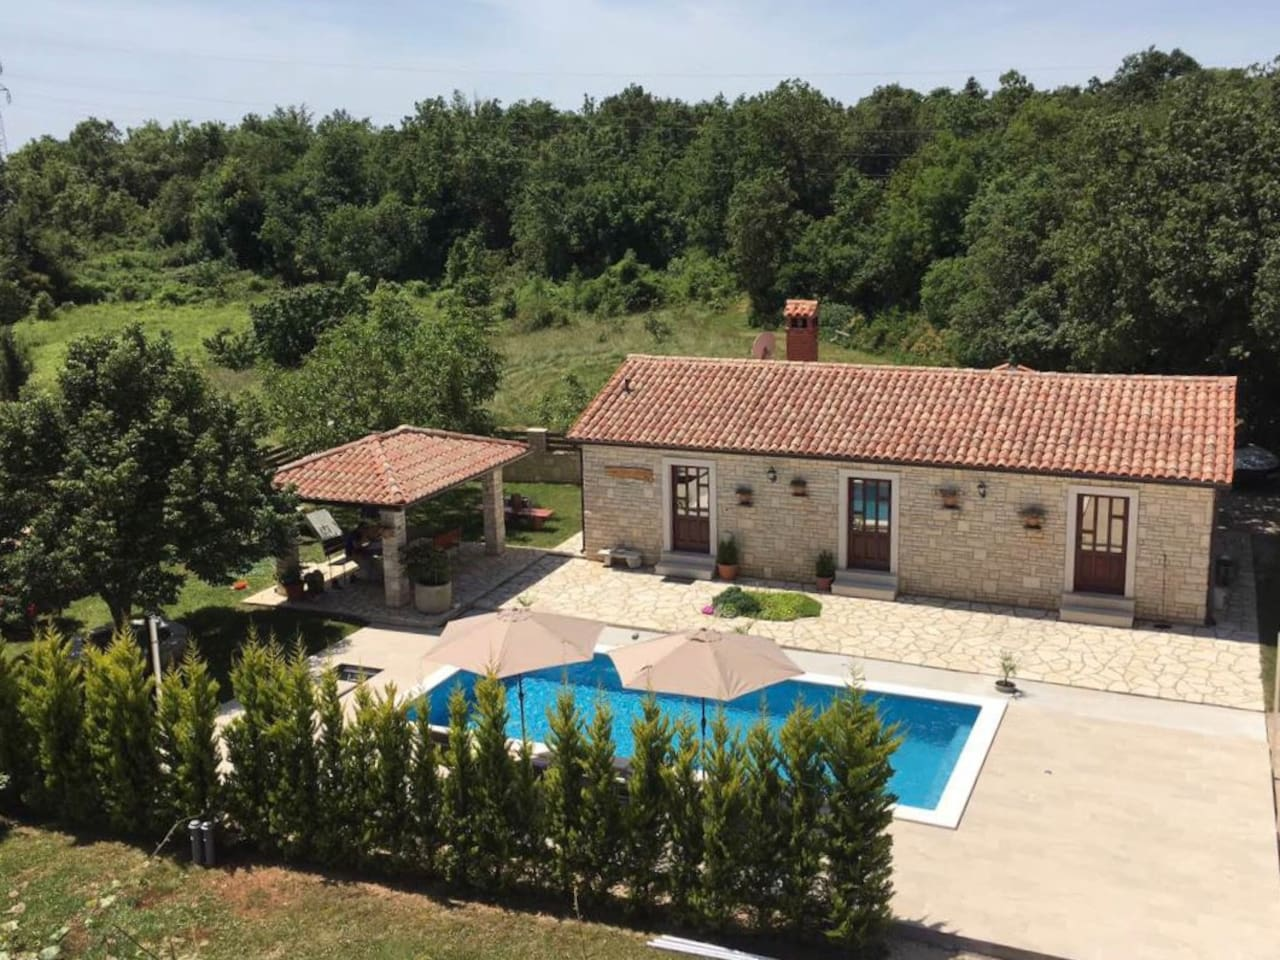 House Edi for 4 people - LARGE private pool 4x9 meters